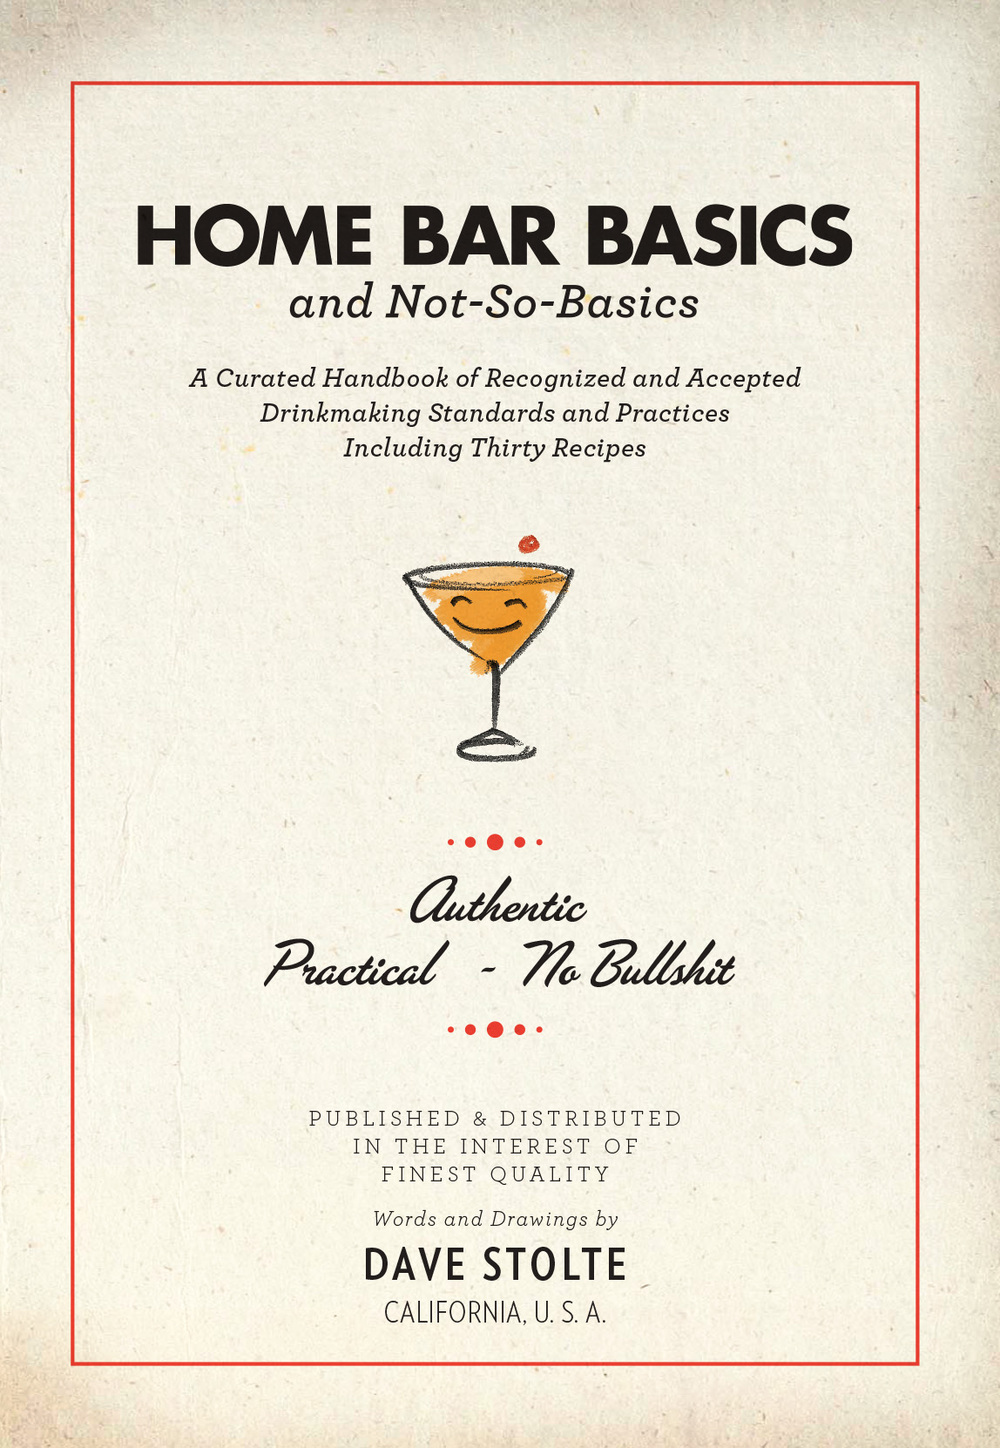 Home_20Bar_20Basics_20cover_original.jpg